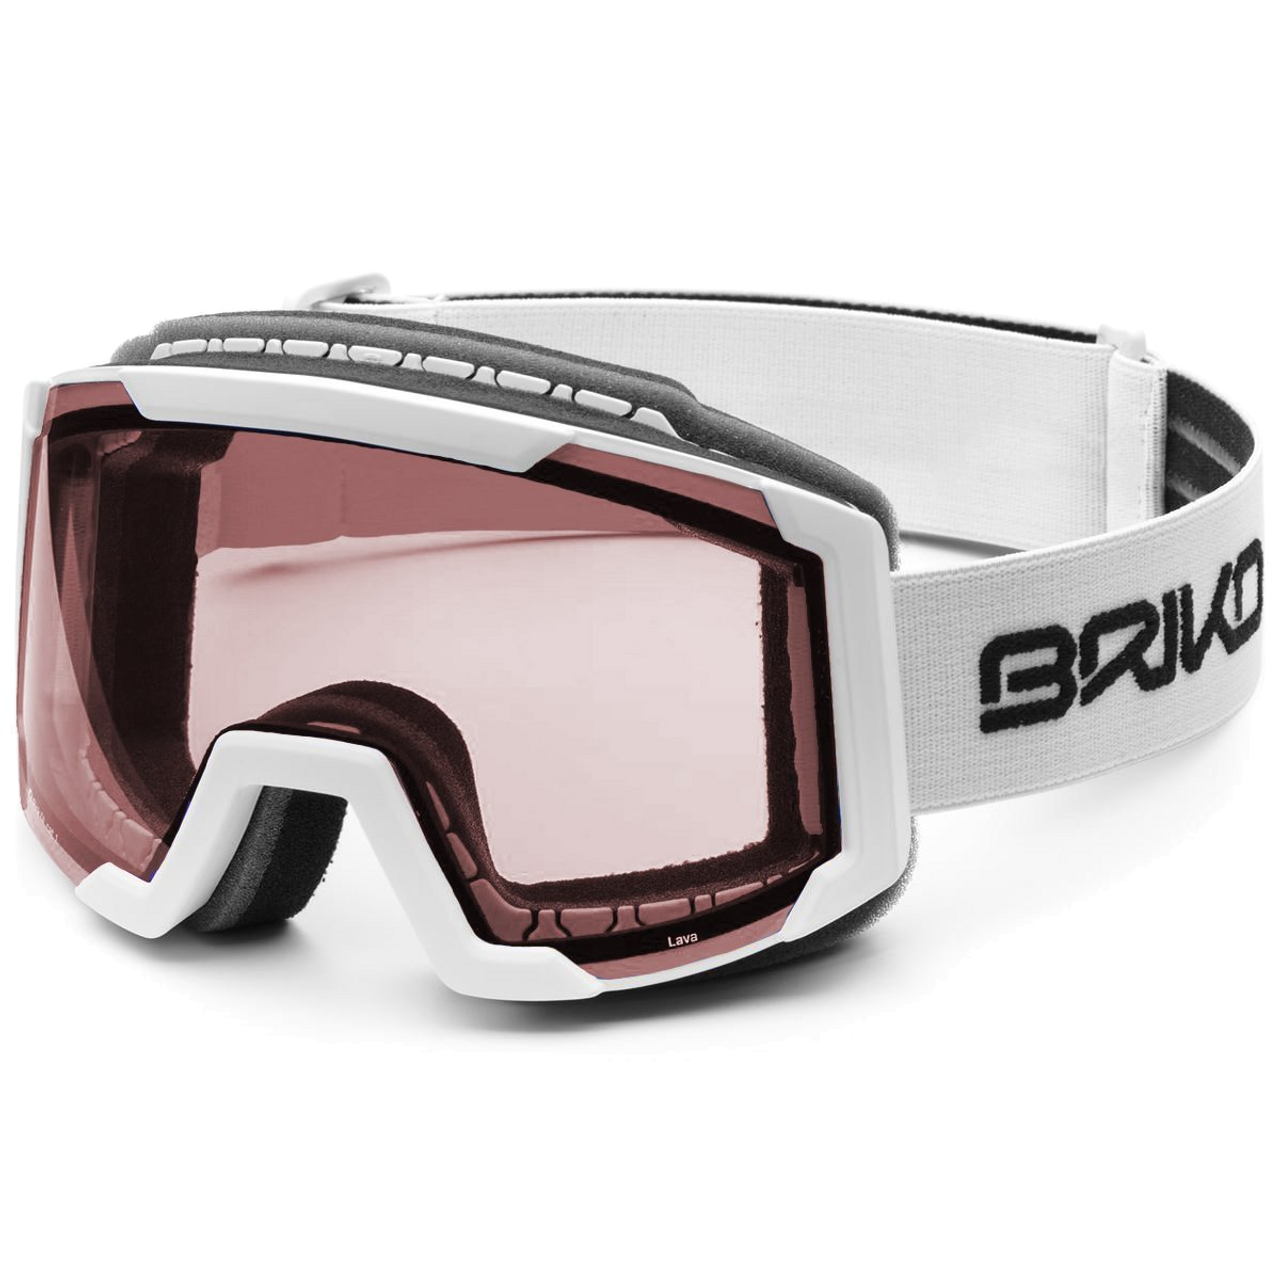 49962161c Briko Lava Matt White Goggles 2019 (pink lens) - Gear West Ski and Run